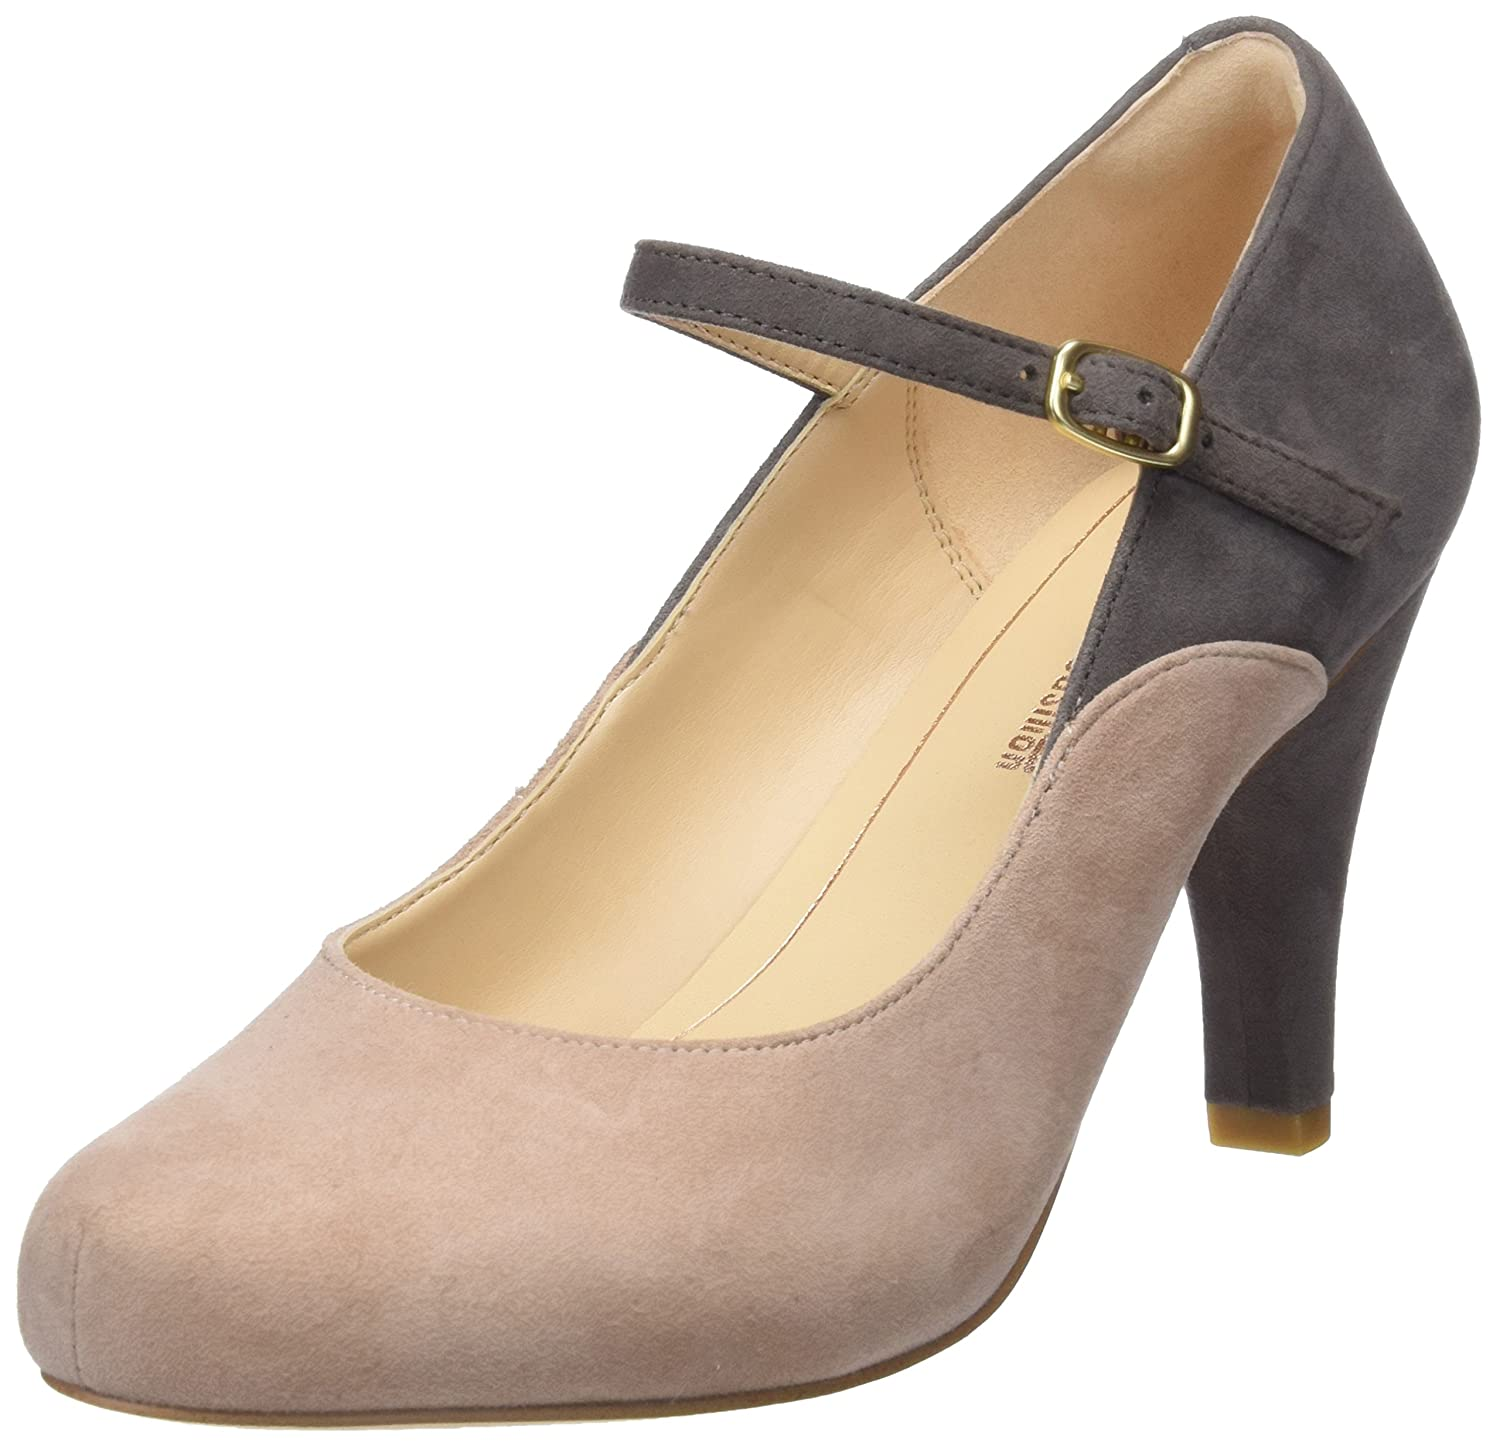 eaf91e51881 Clarks Dalia Lily Suede Shoes in Black  Amazon.co.uk  Shoes   Bags